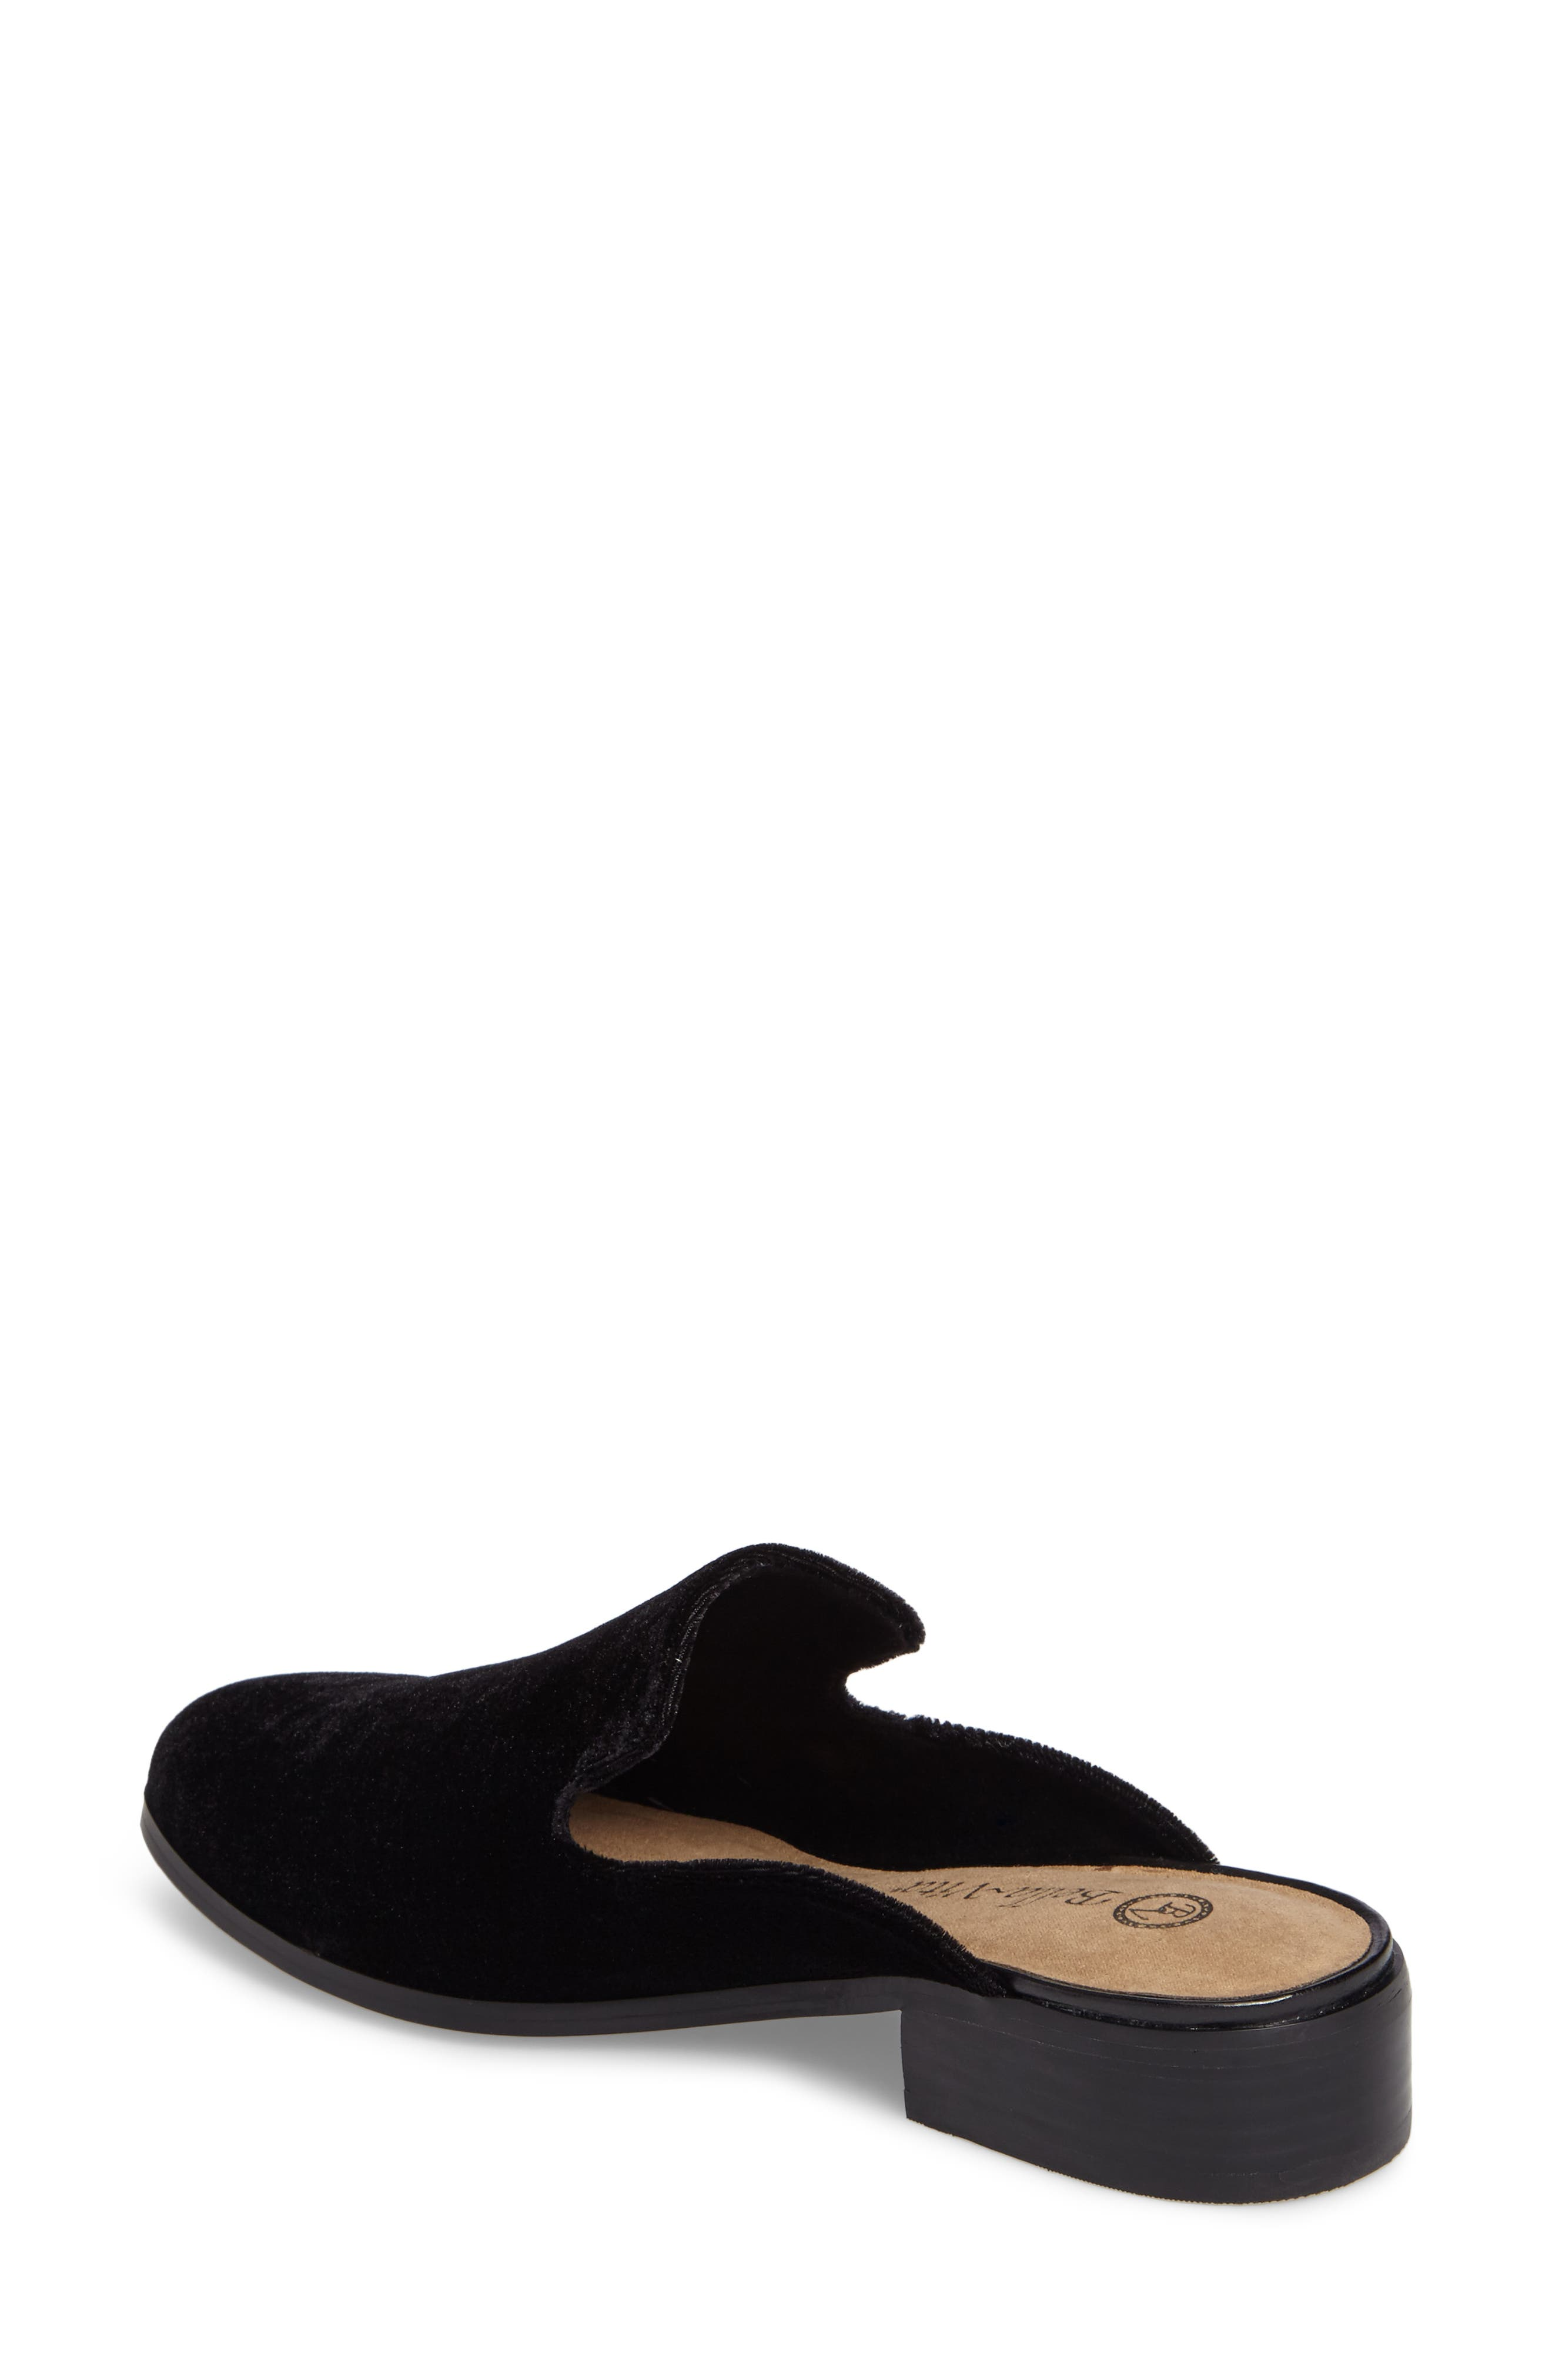 Briar II Loafer Mule,                             Alternate thumbnail 2, color,                             Black Fabric